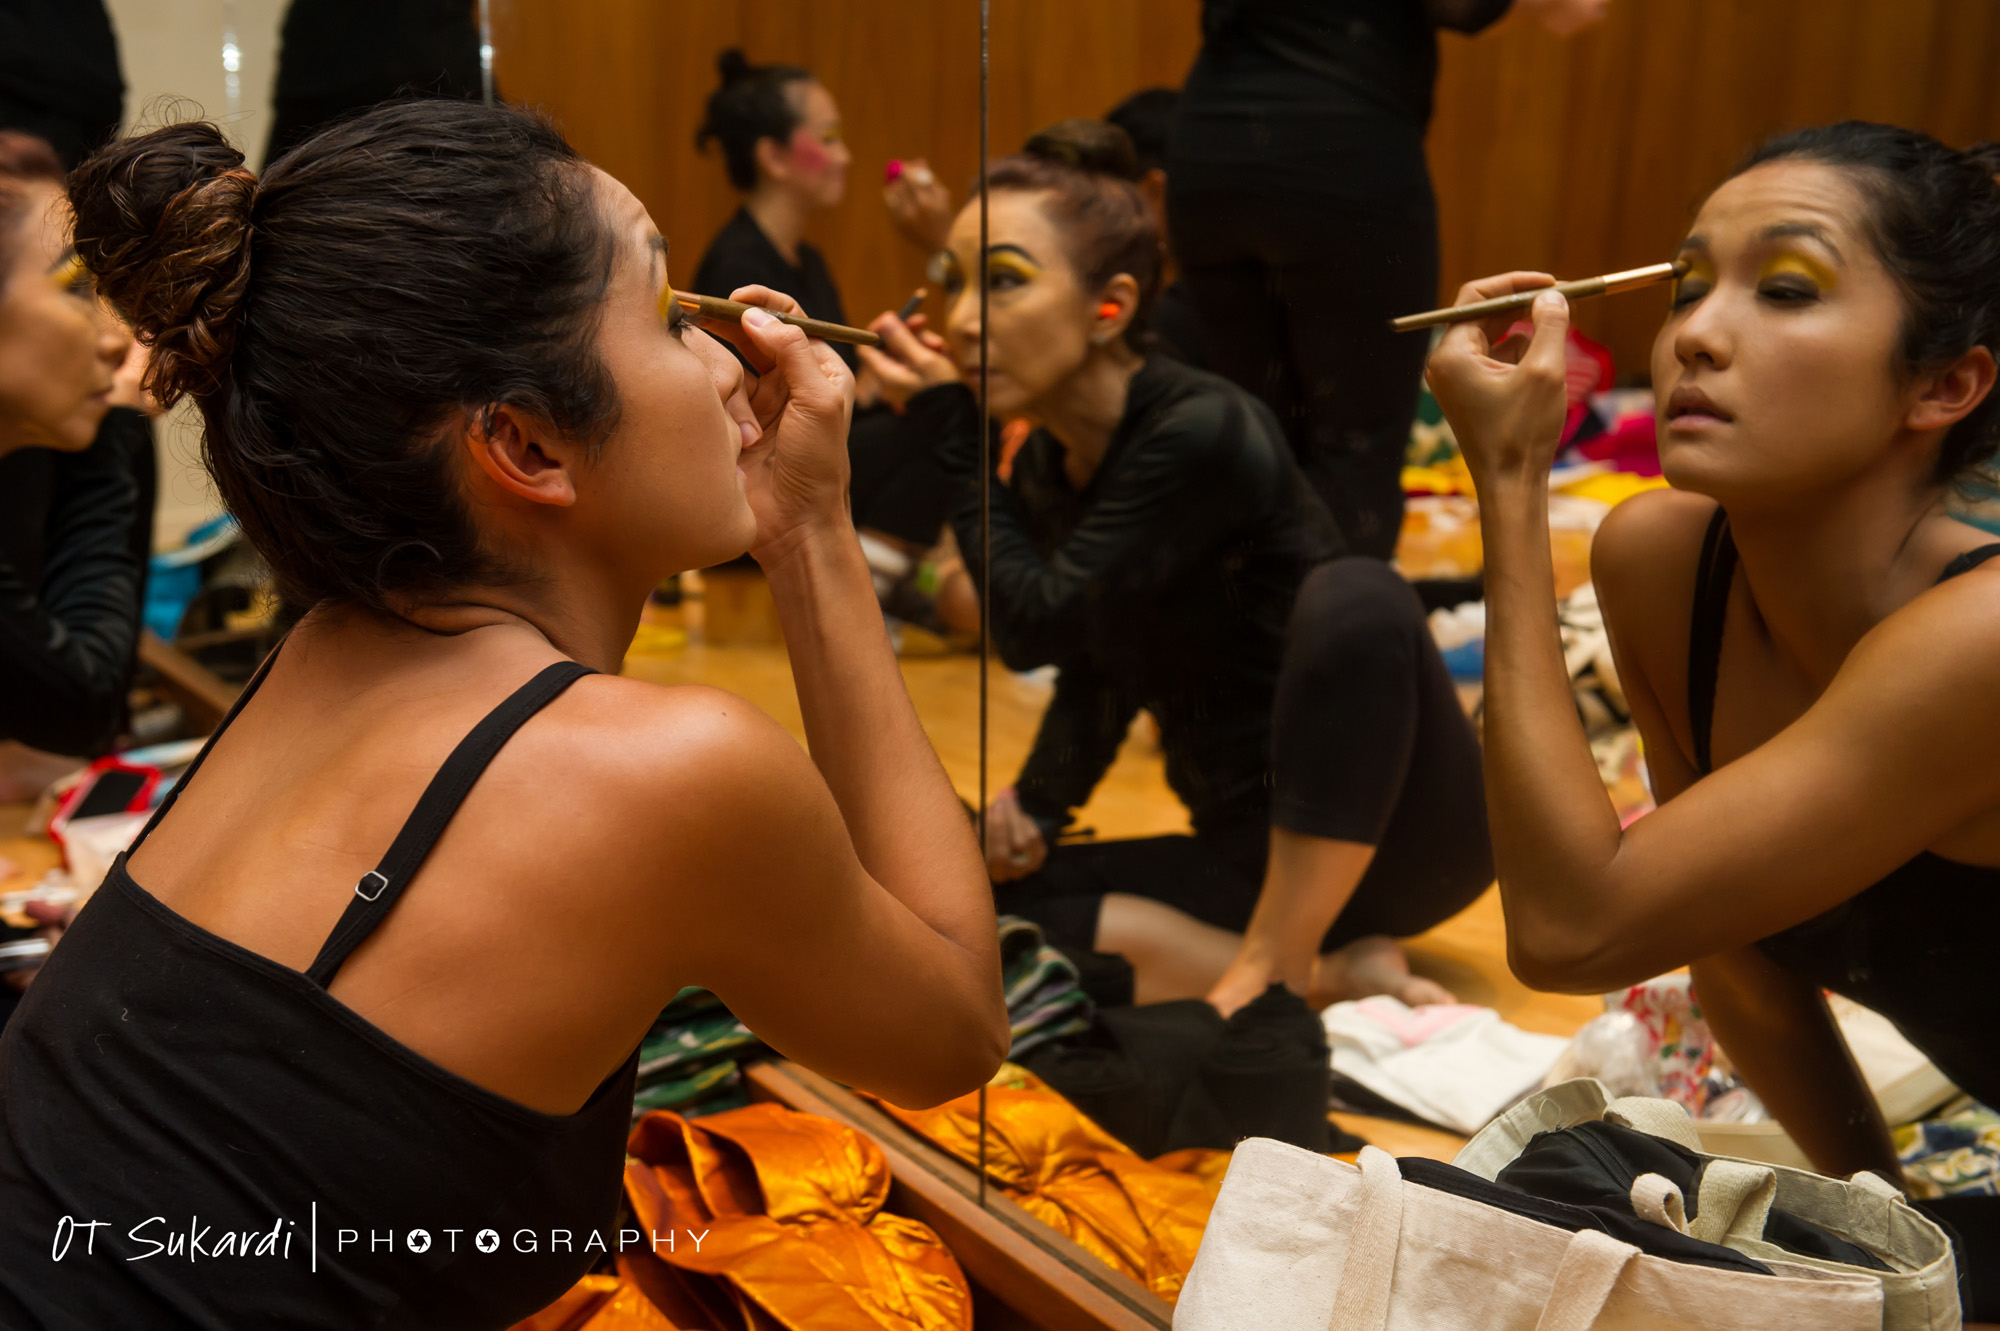 Performer does makeup in mirror